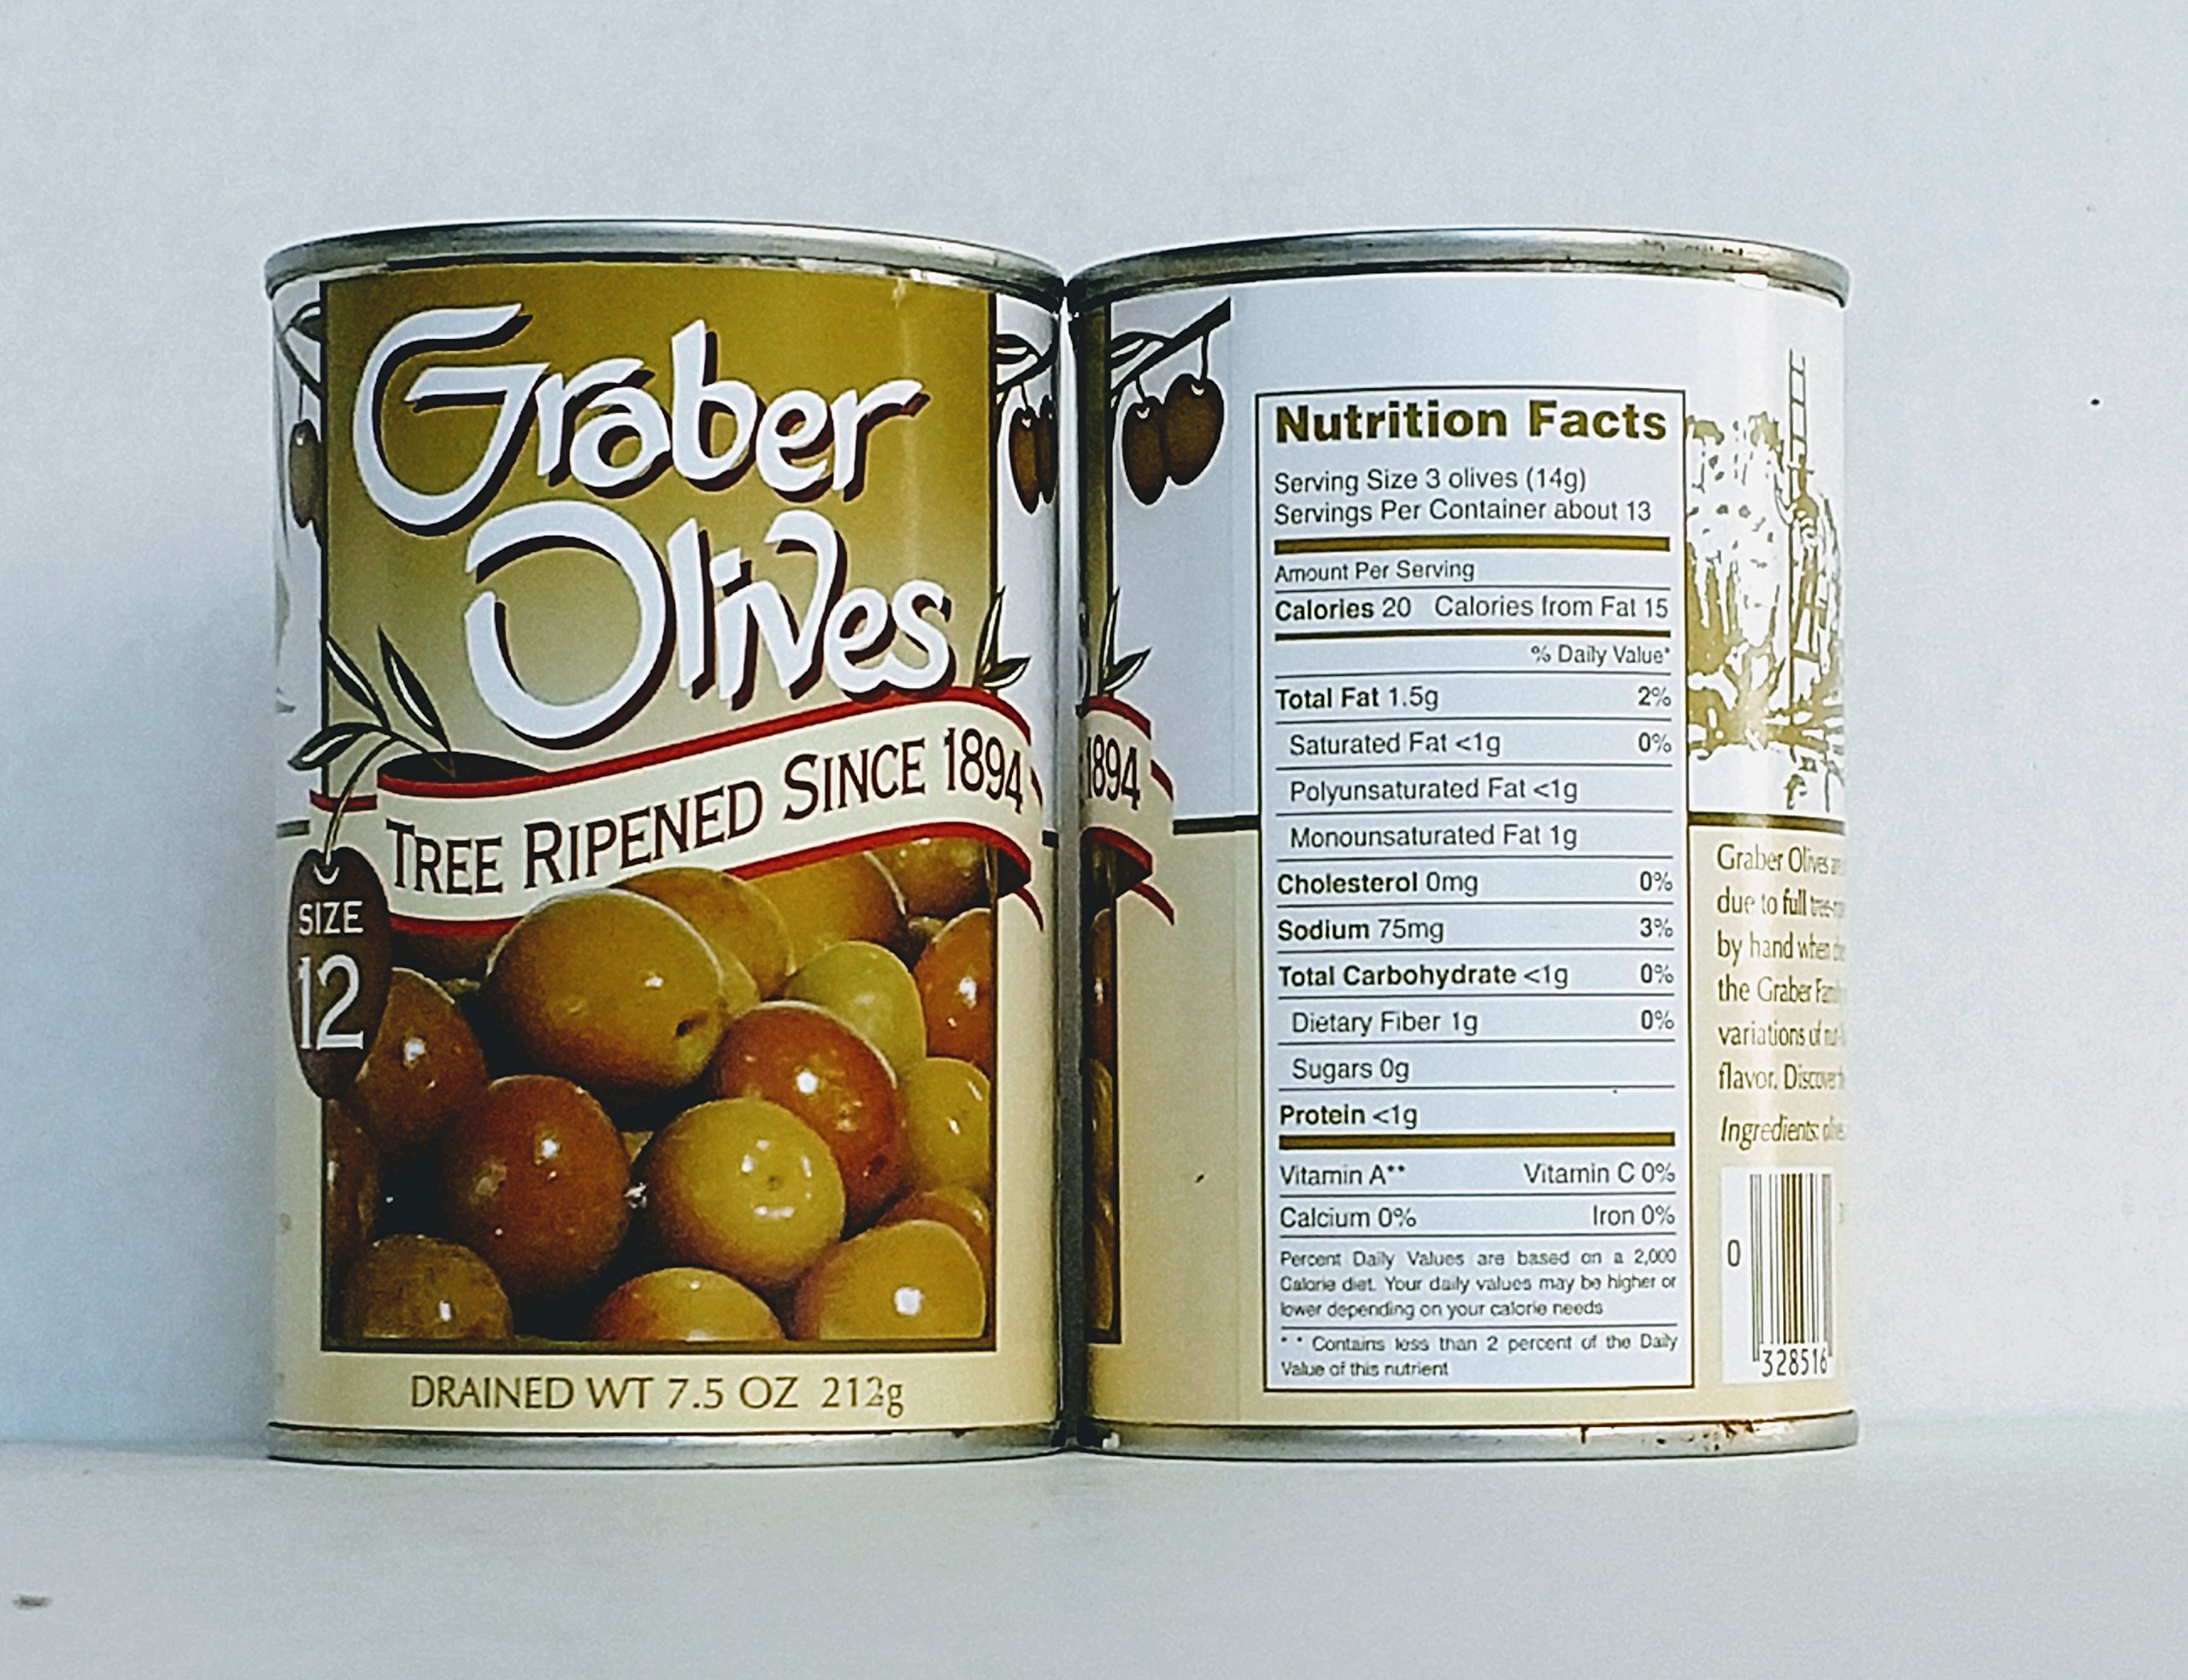 Graber, Tree Ripened Olives, 7.5oz (Pack of 2) (Size 12) - Gourmet California Olives, Hand Picked and Delivered Fresh. Graber Olive House has been cultivating Award winning olives since 1894.